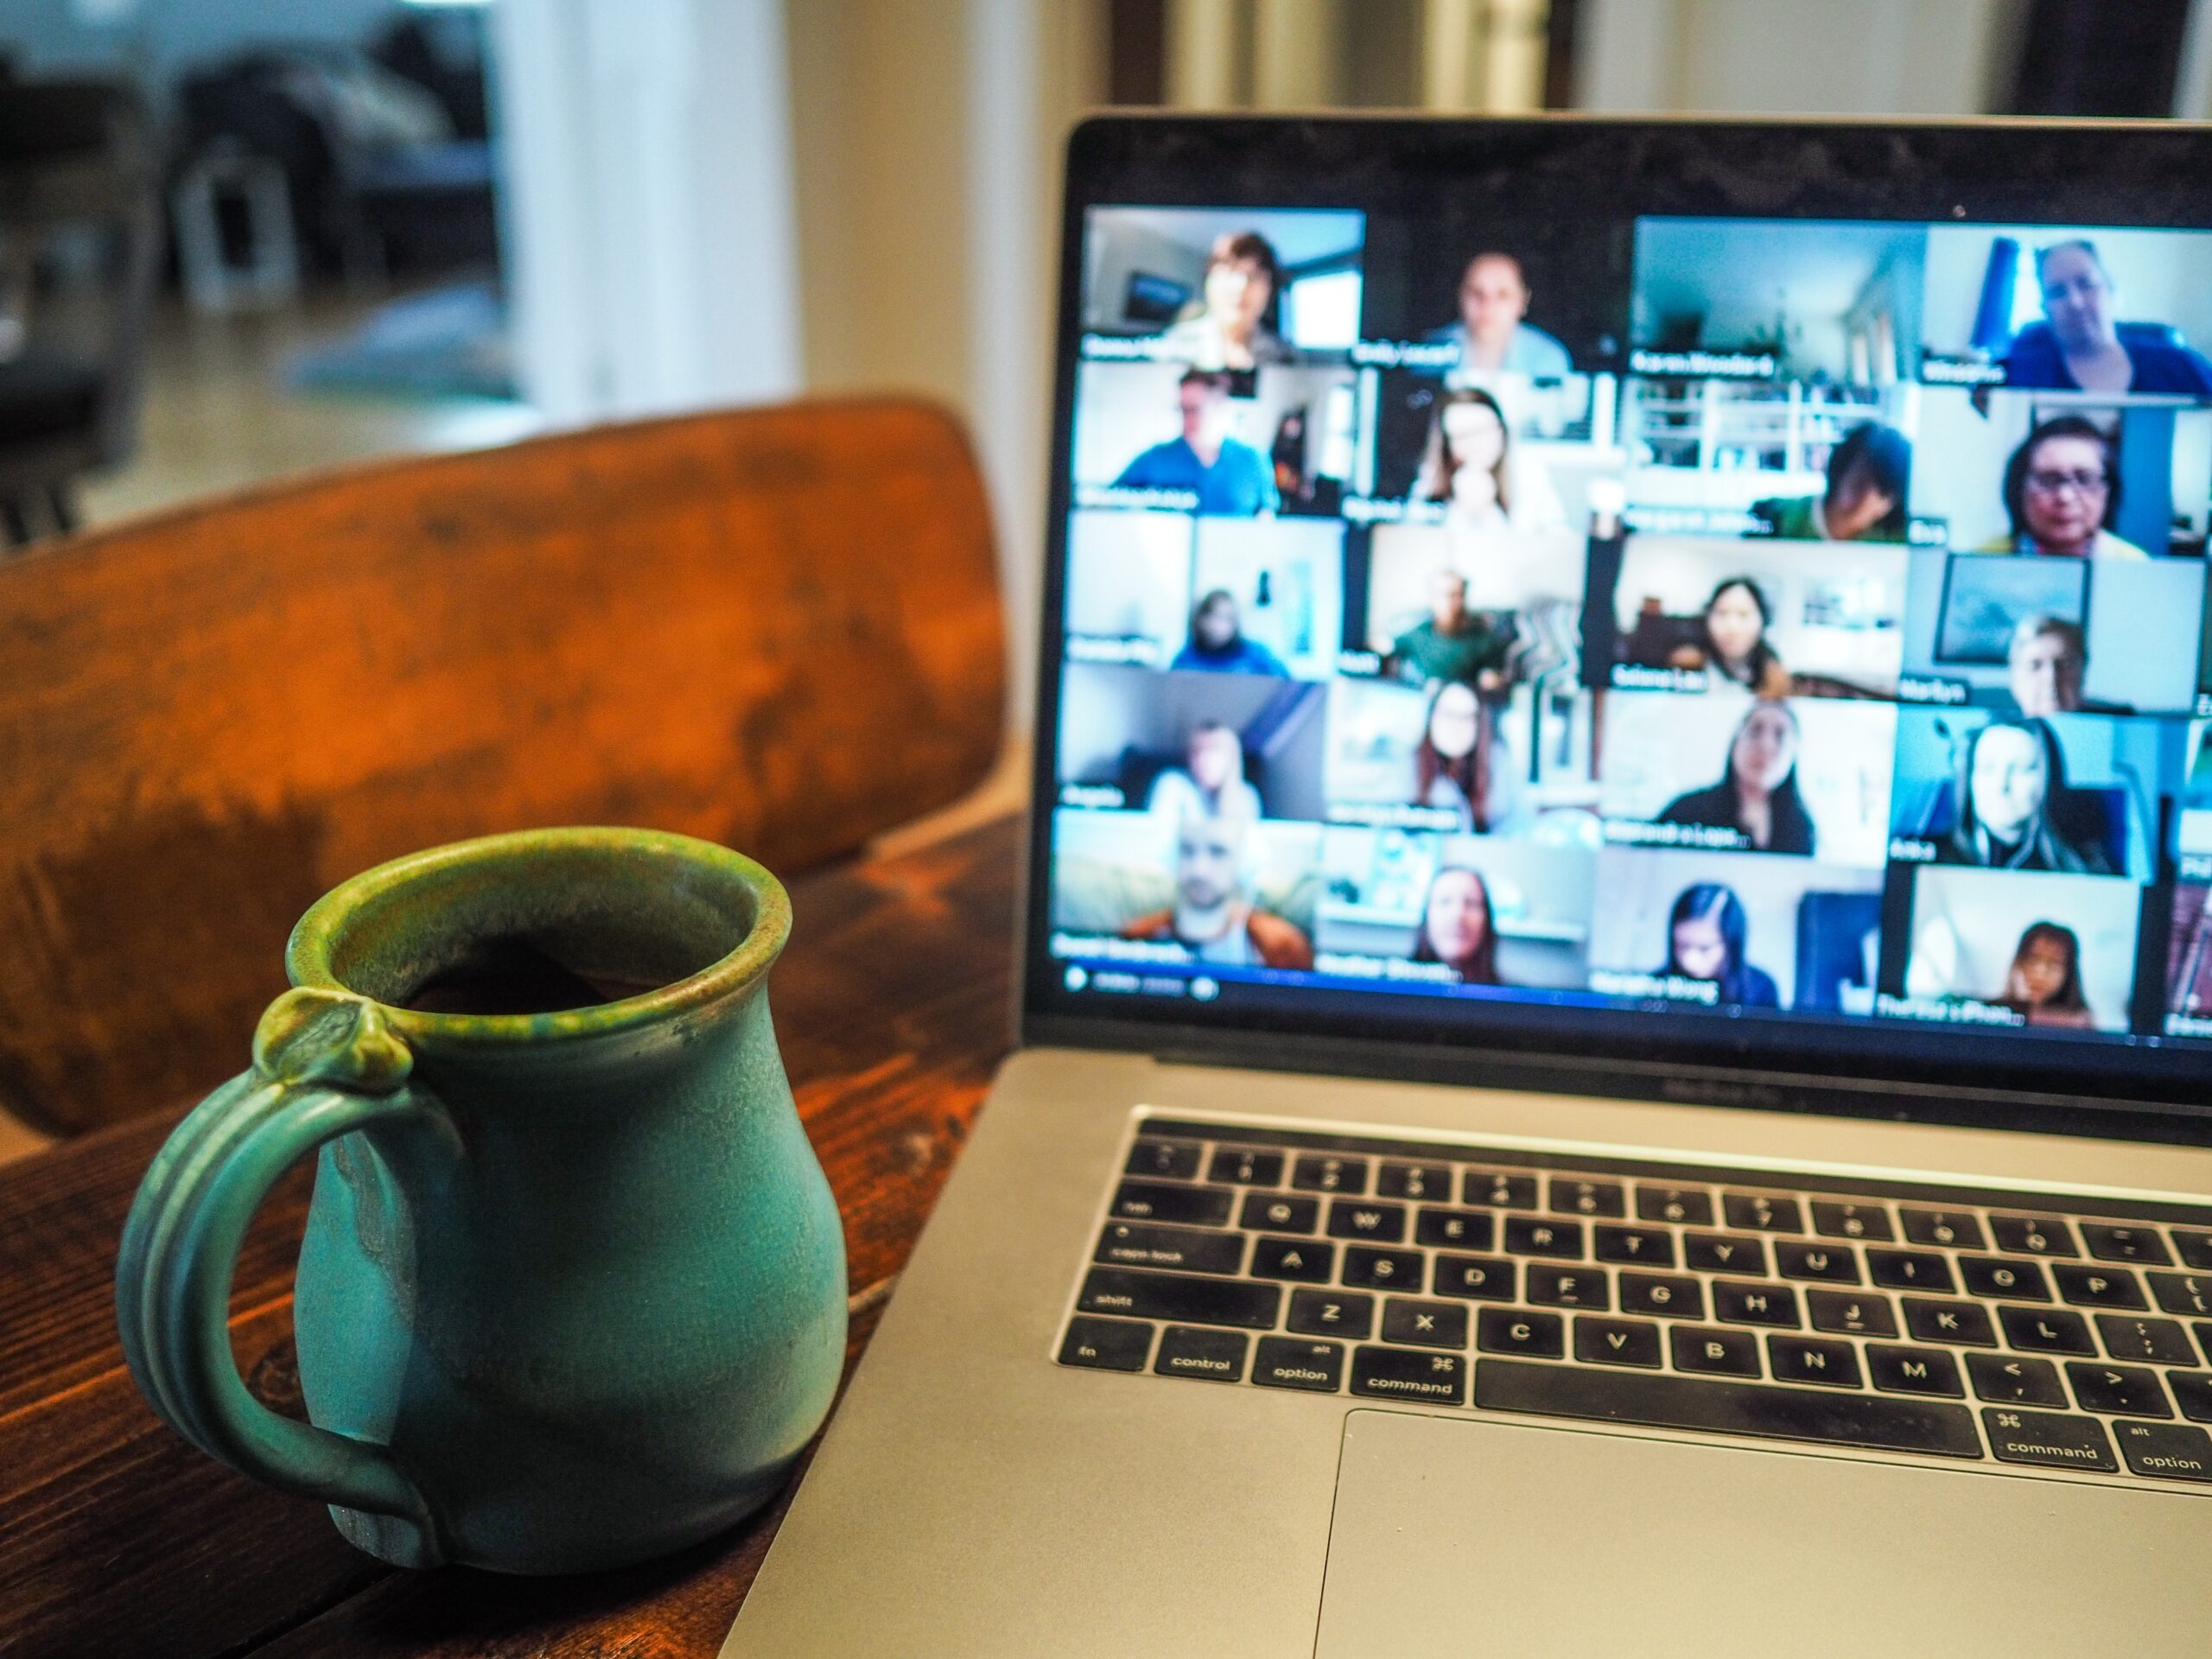 5 Ways To Better Plan Your Work From Home Days